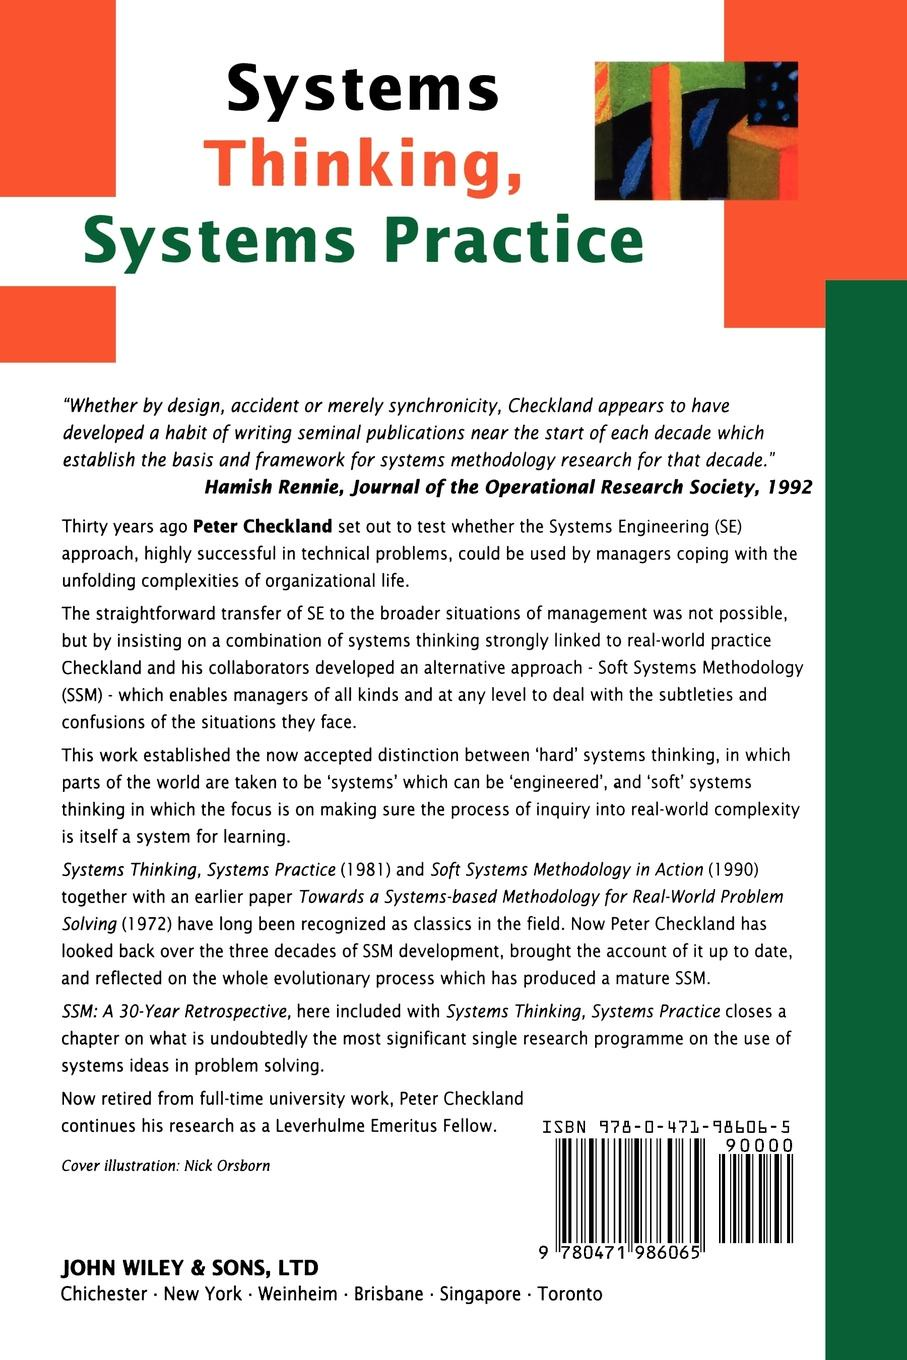 Checkland Systems Thinking, Systems Practice door entry systems